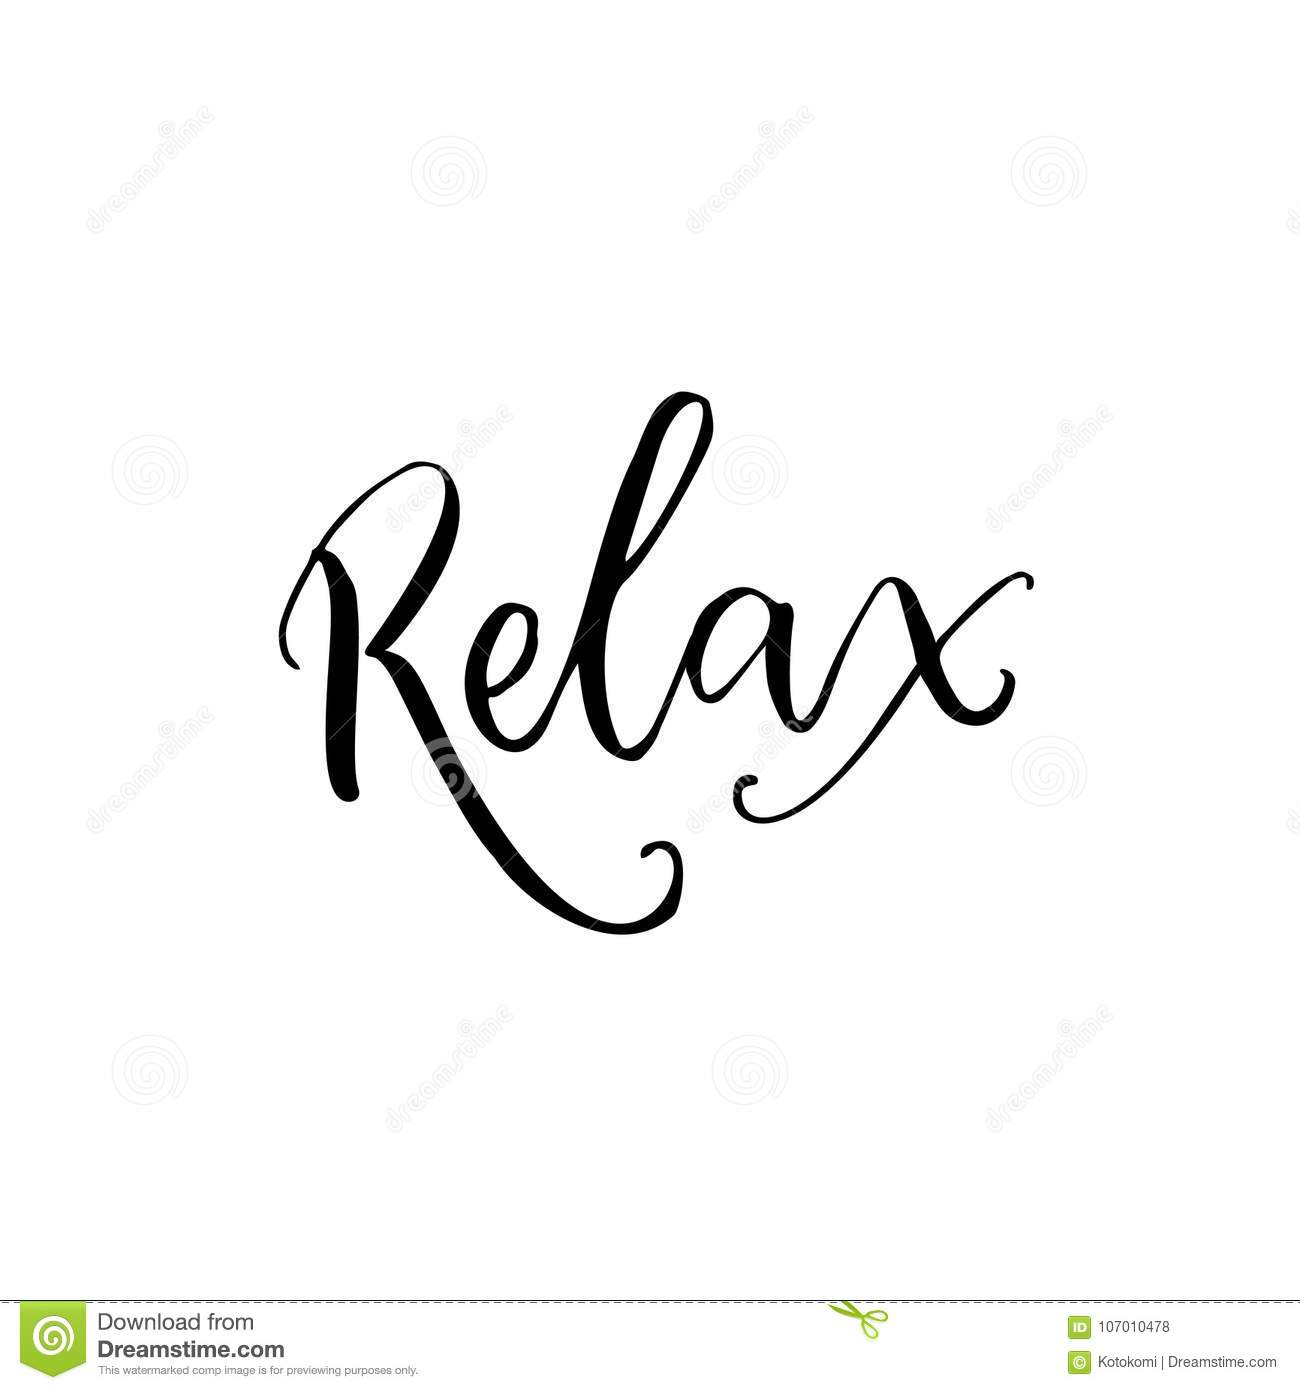 Relax Black Calligraphy Word Isolated On White Background